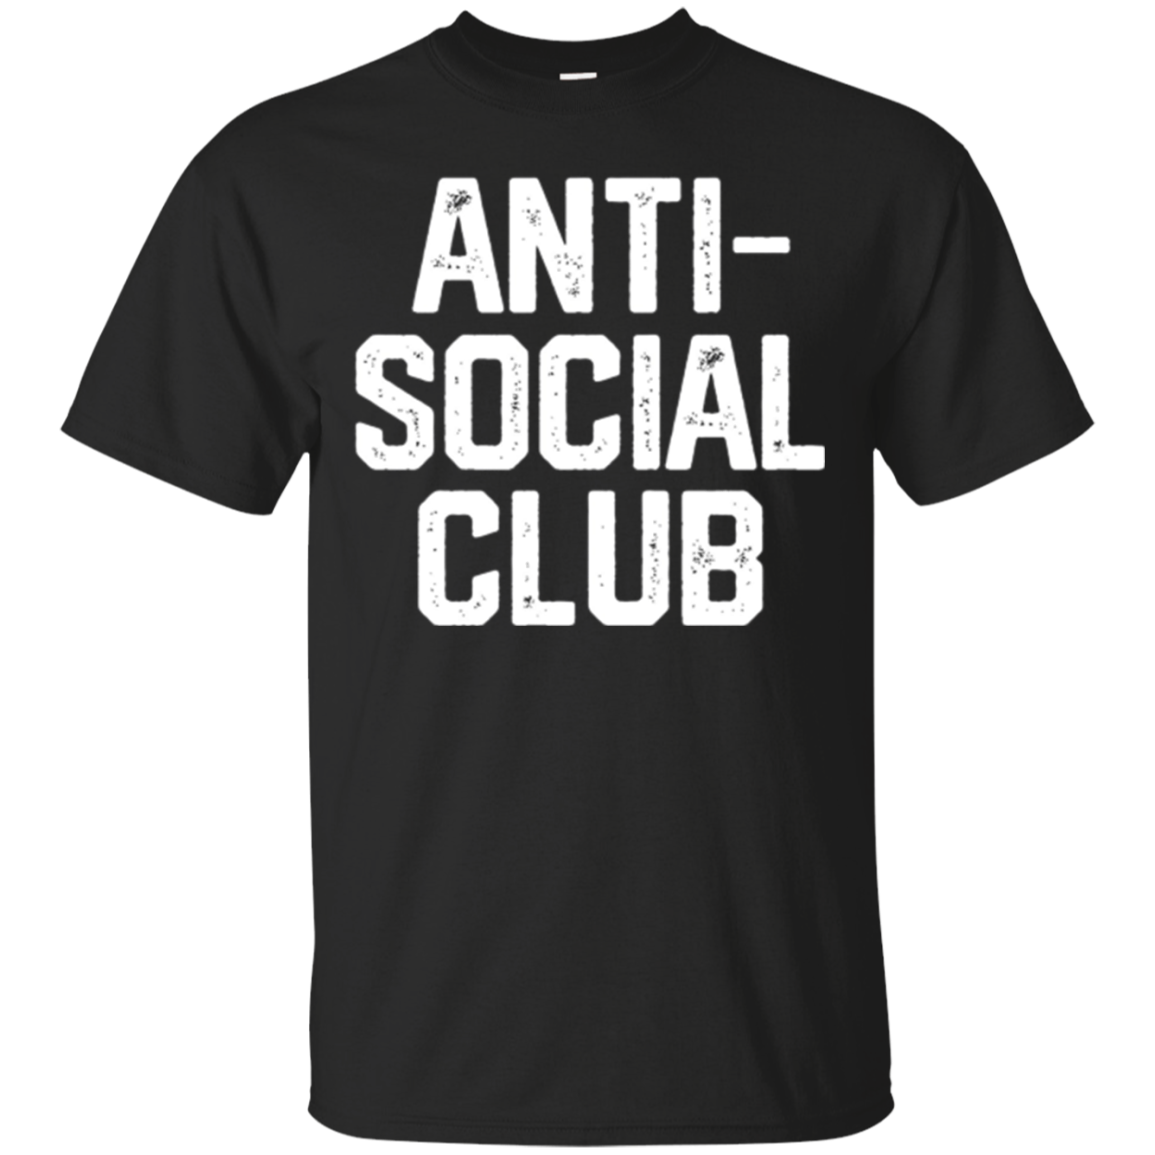 Funny Shirt Antisocial Club Novelty Vintage T-Shirt Gift